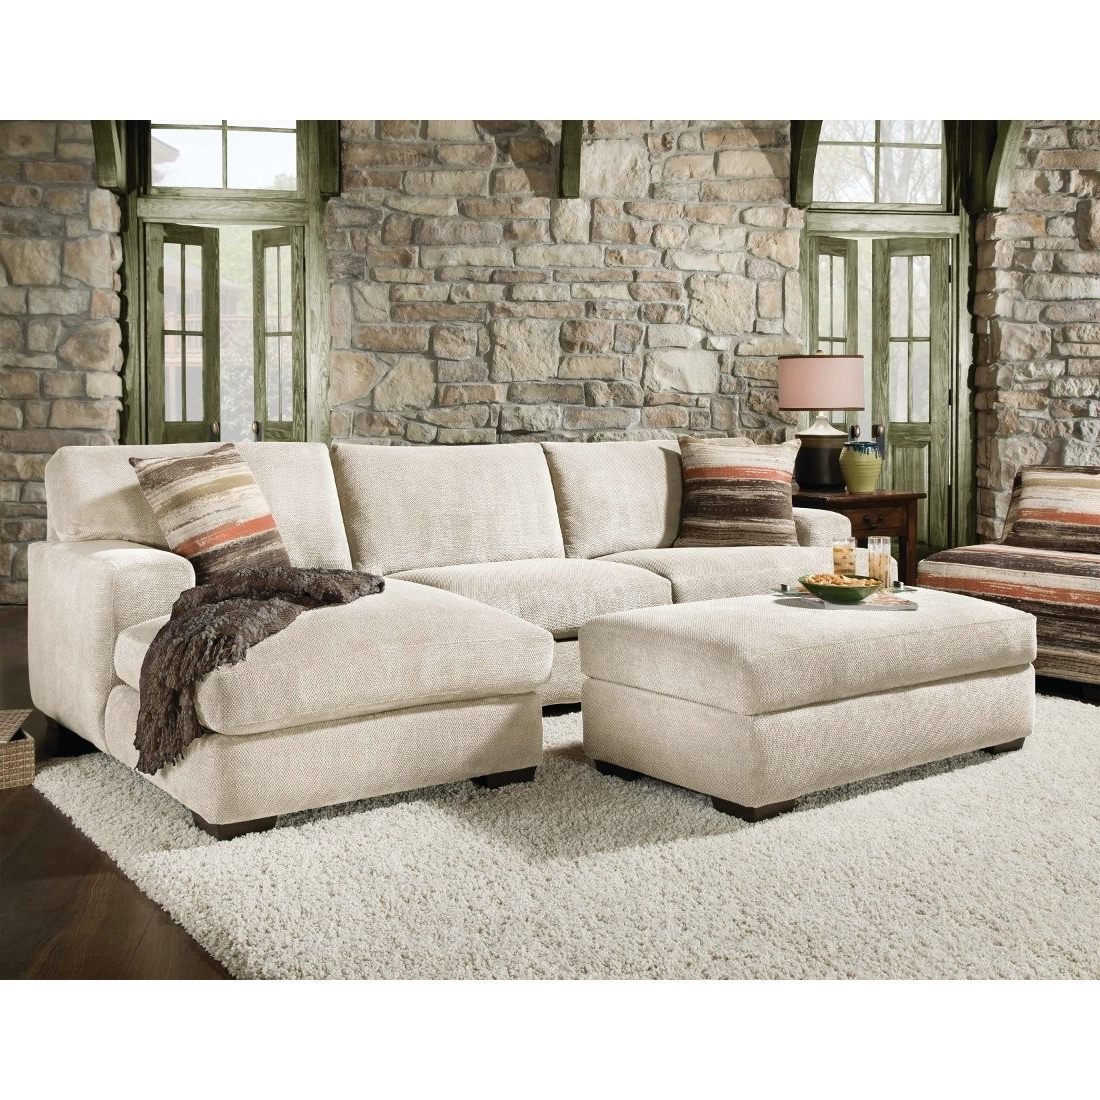 Most Current Sectional Sofa Design: Sectional Sofa With Chaise And Ottoman Regarding Sectional Sofas With Chaise And Ottoman (View 6 of 15)